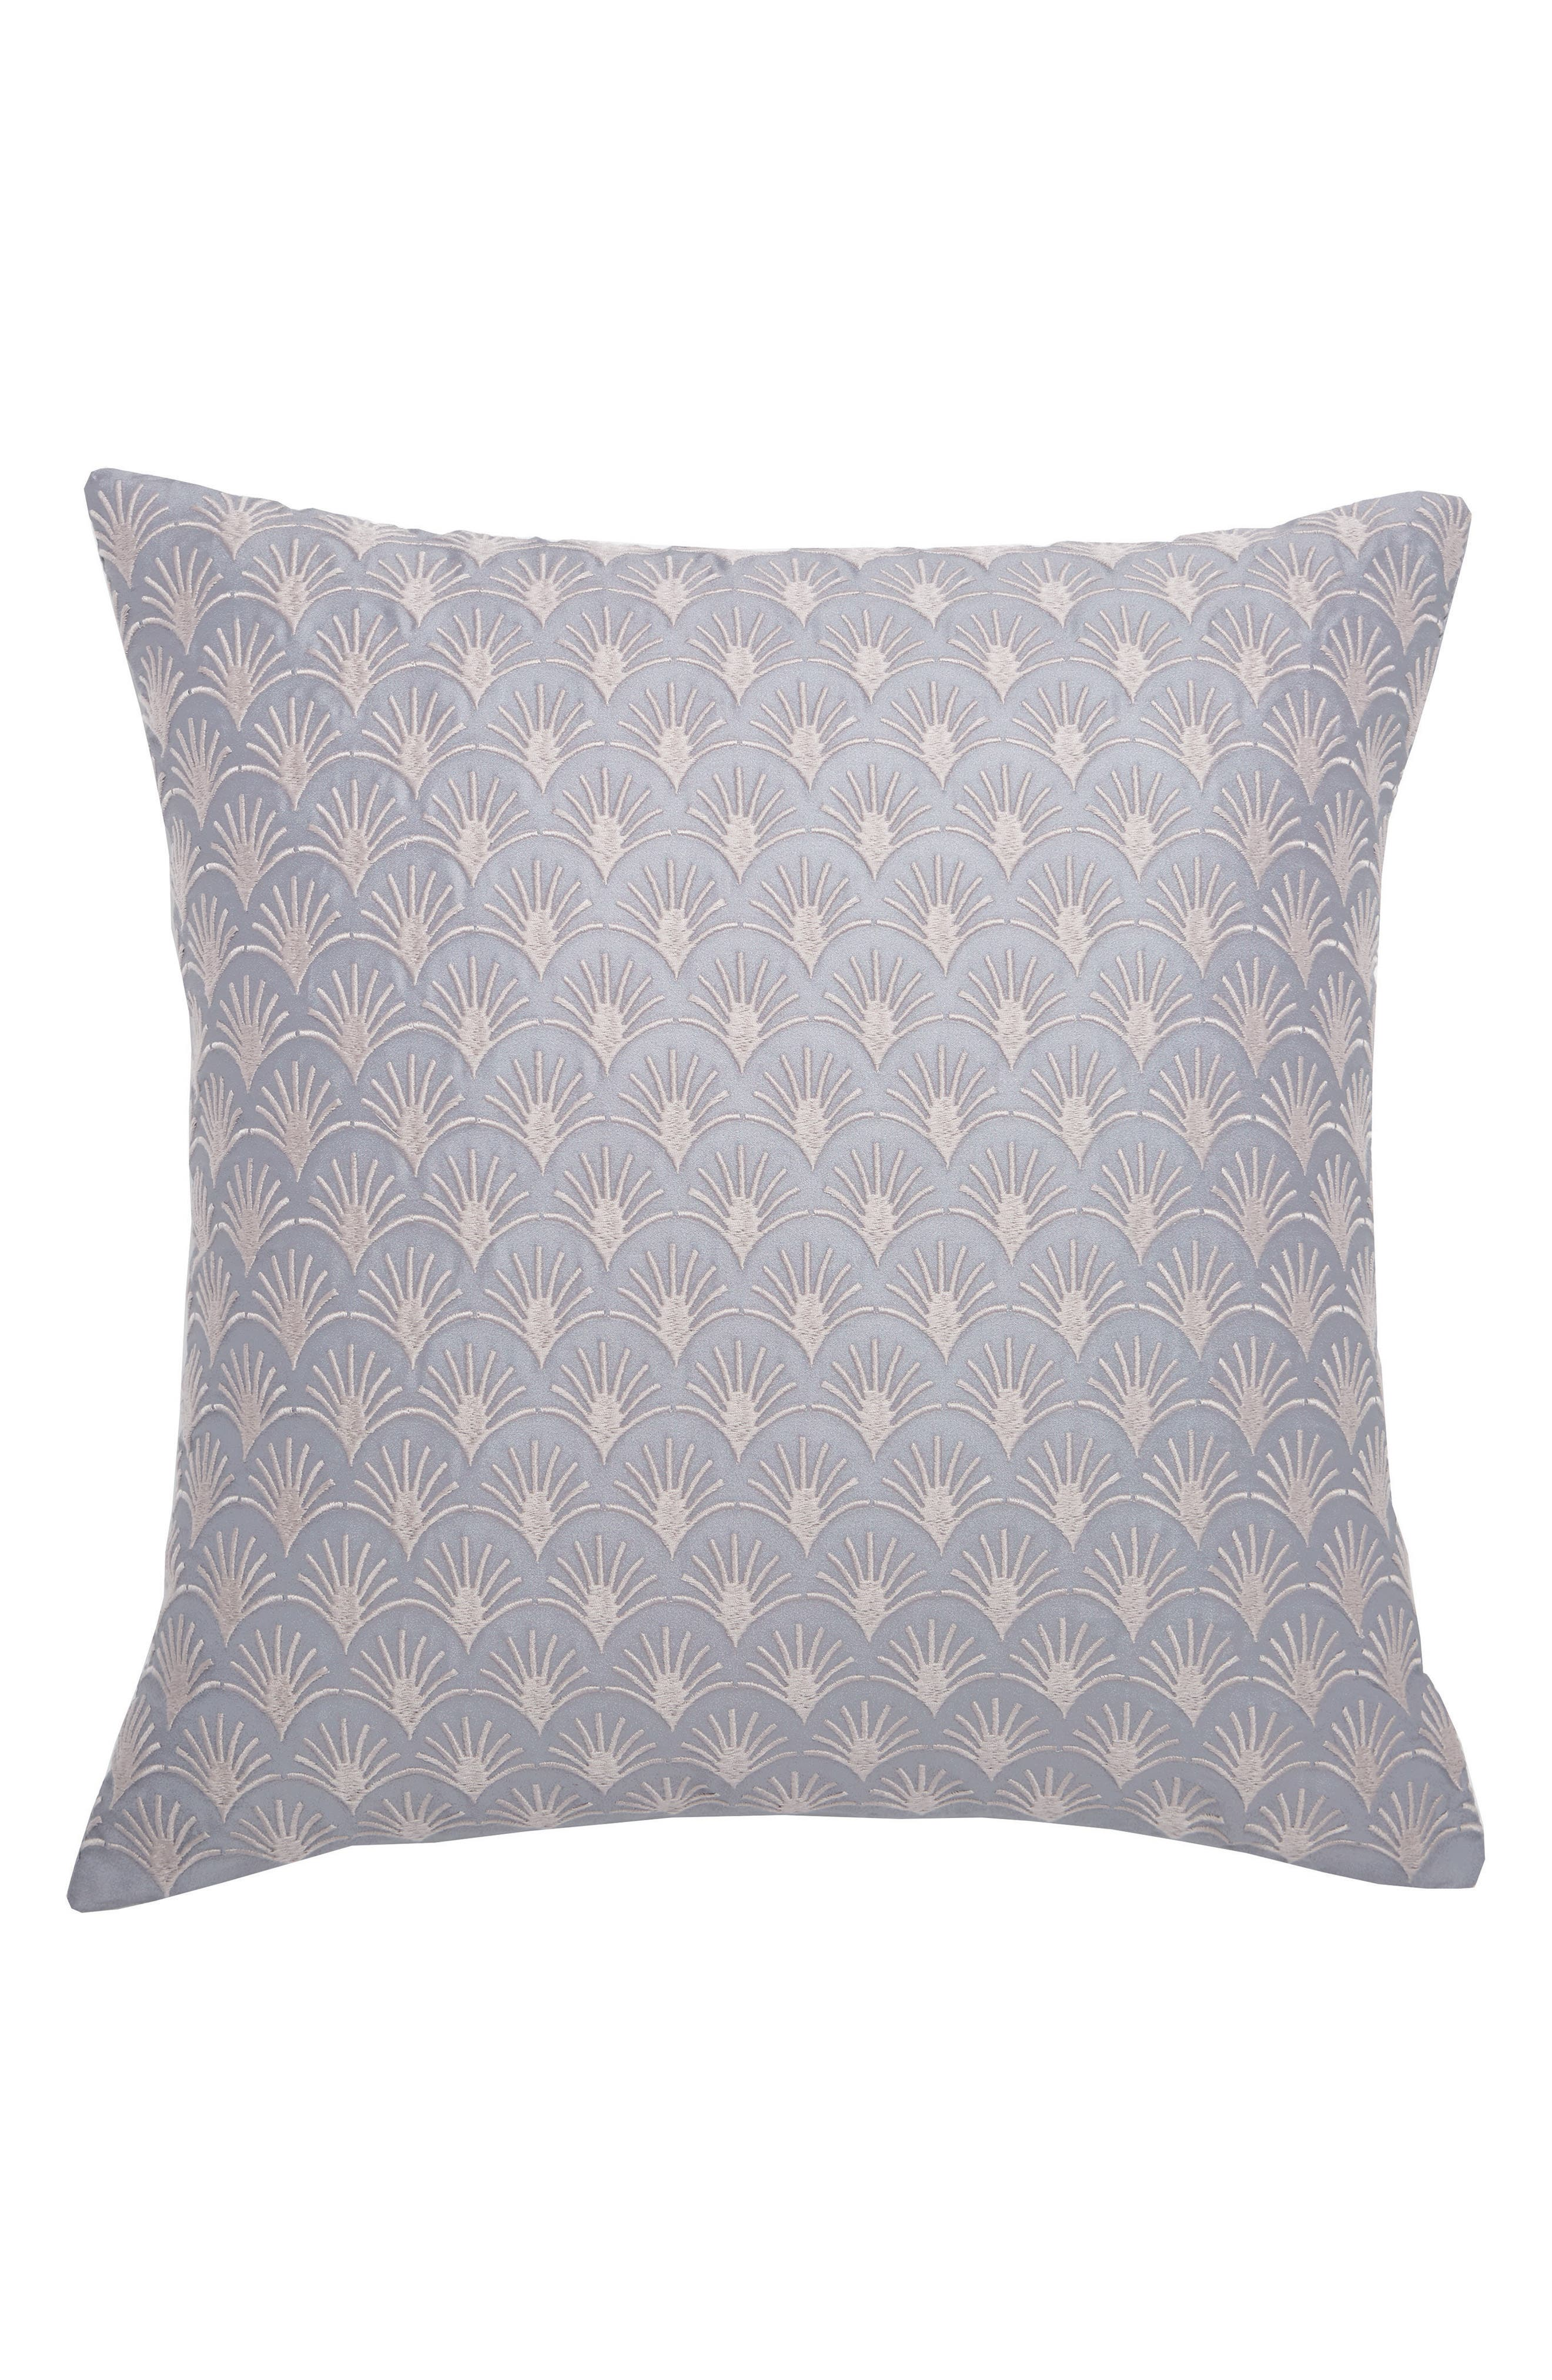 Fan Embroidered Pillow,                             Main thumbnail 1, color,                             020